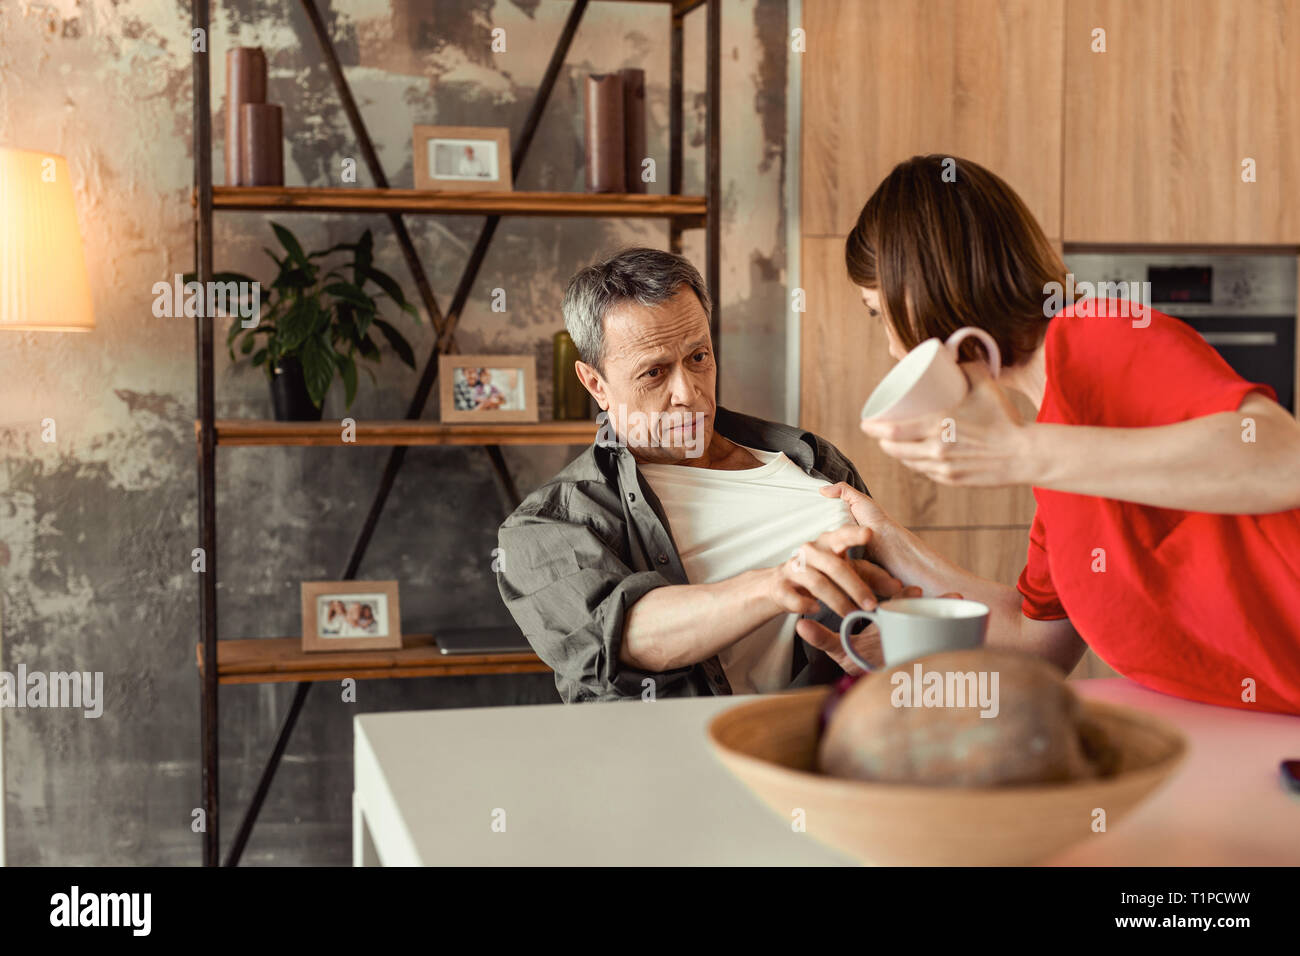 Serious adult man asking his mad wife calm and serenity - Stock Image